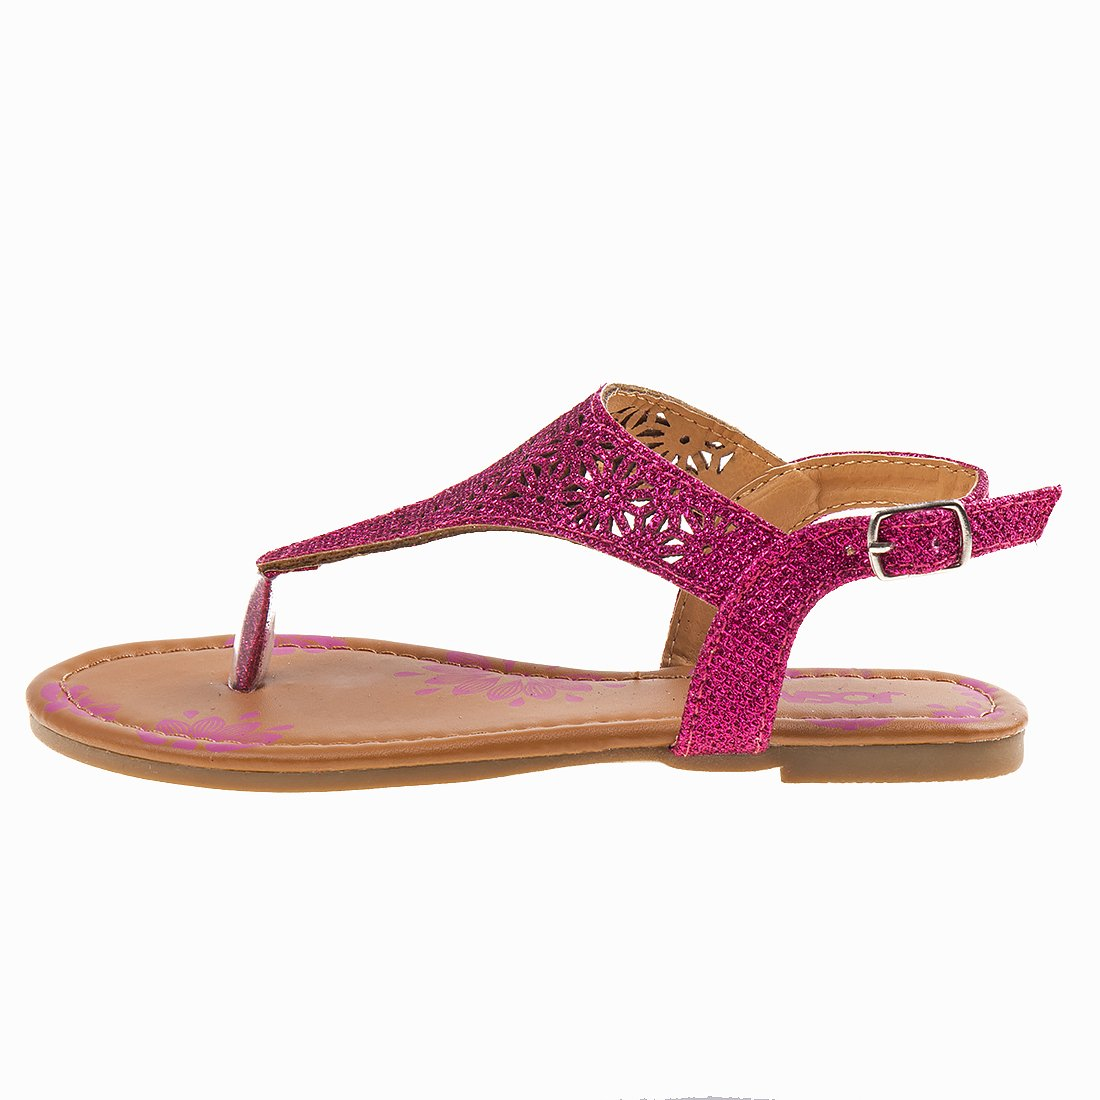 Josmo Girl's T-Strap Glitter Thong Sandals, Pink, 3 M US Big Kid' by Josmo (Image #2)